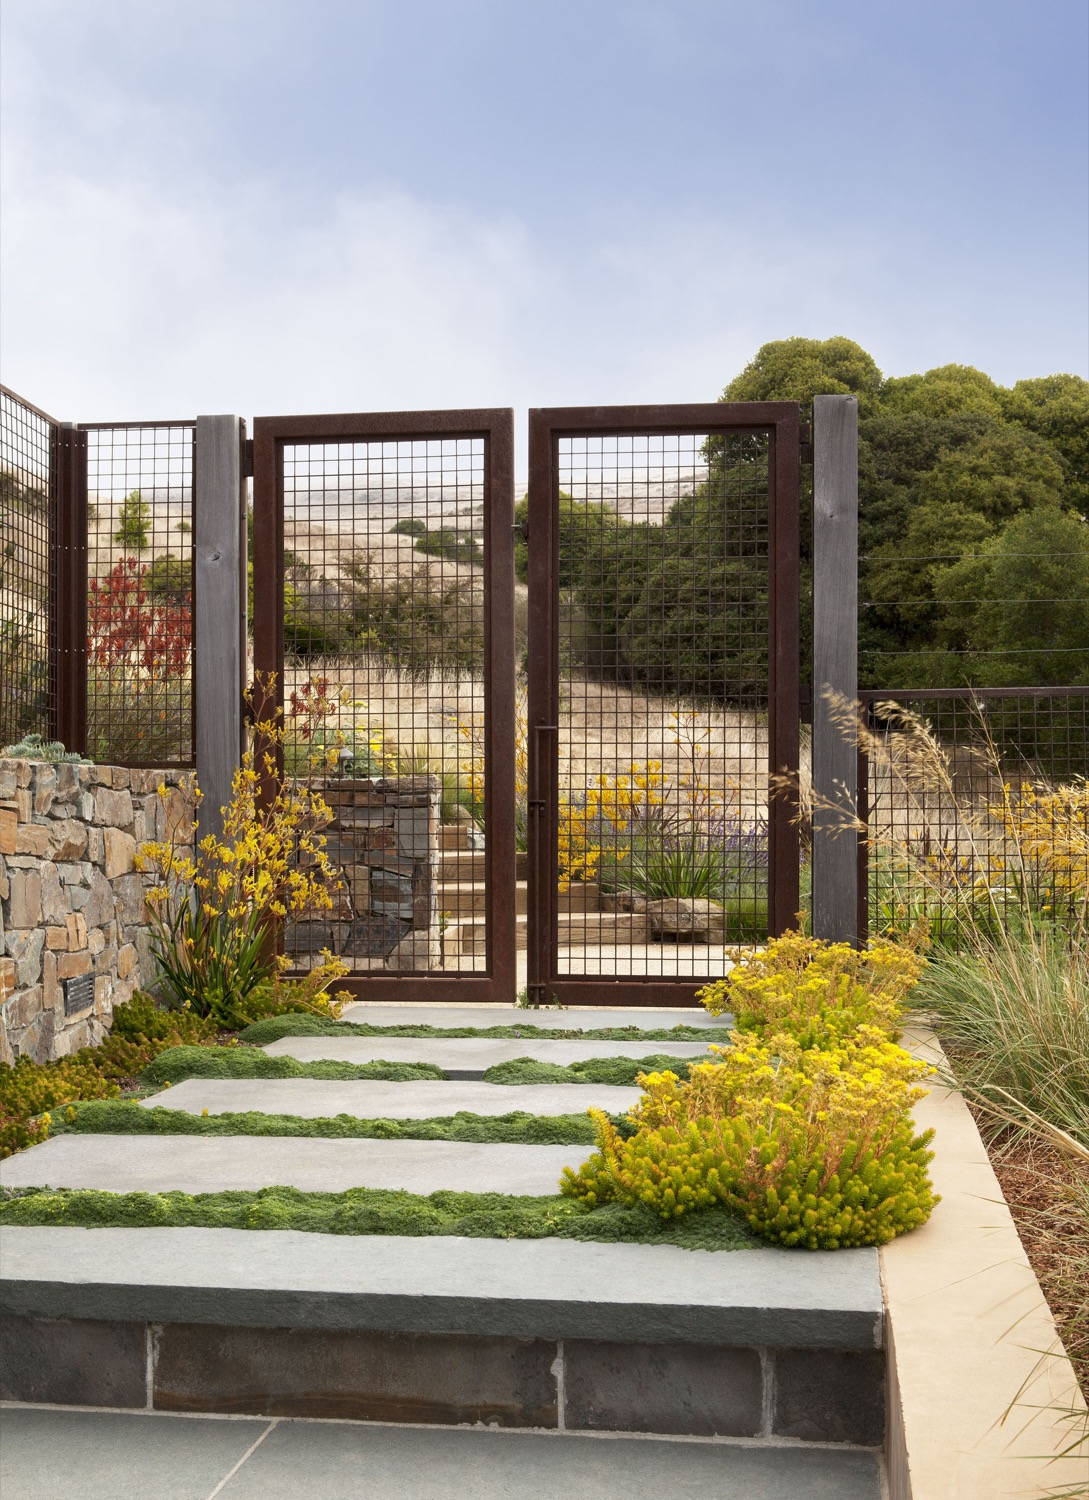 Bright yellow plantings create a visual connection through a gate. Stone pavers are softened with bands of moss.